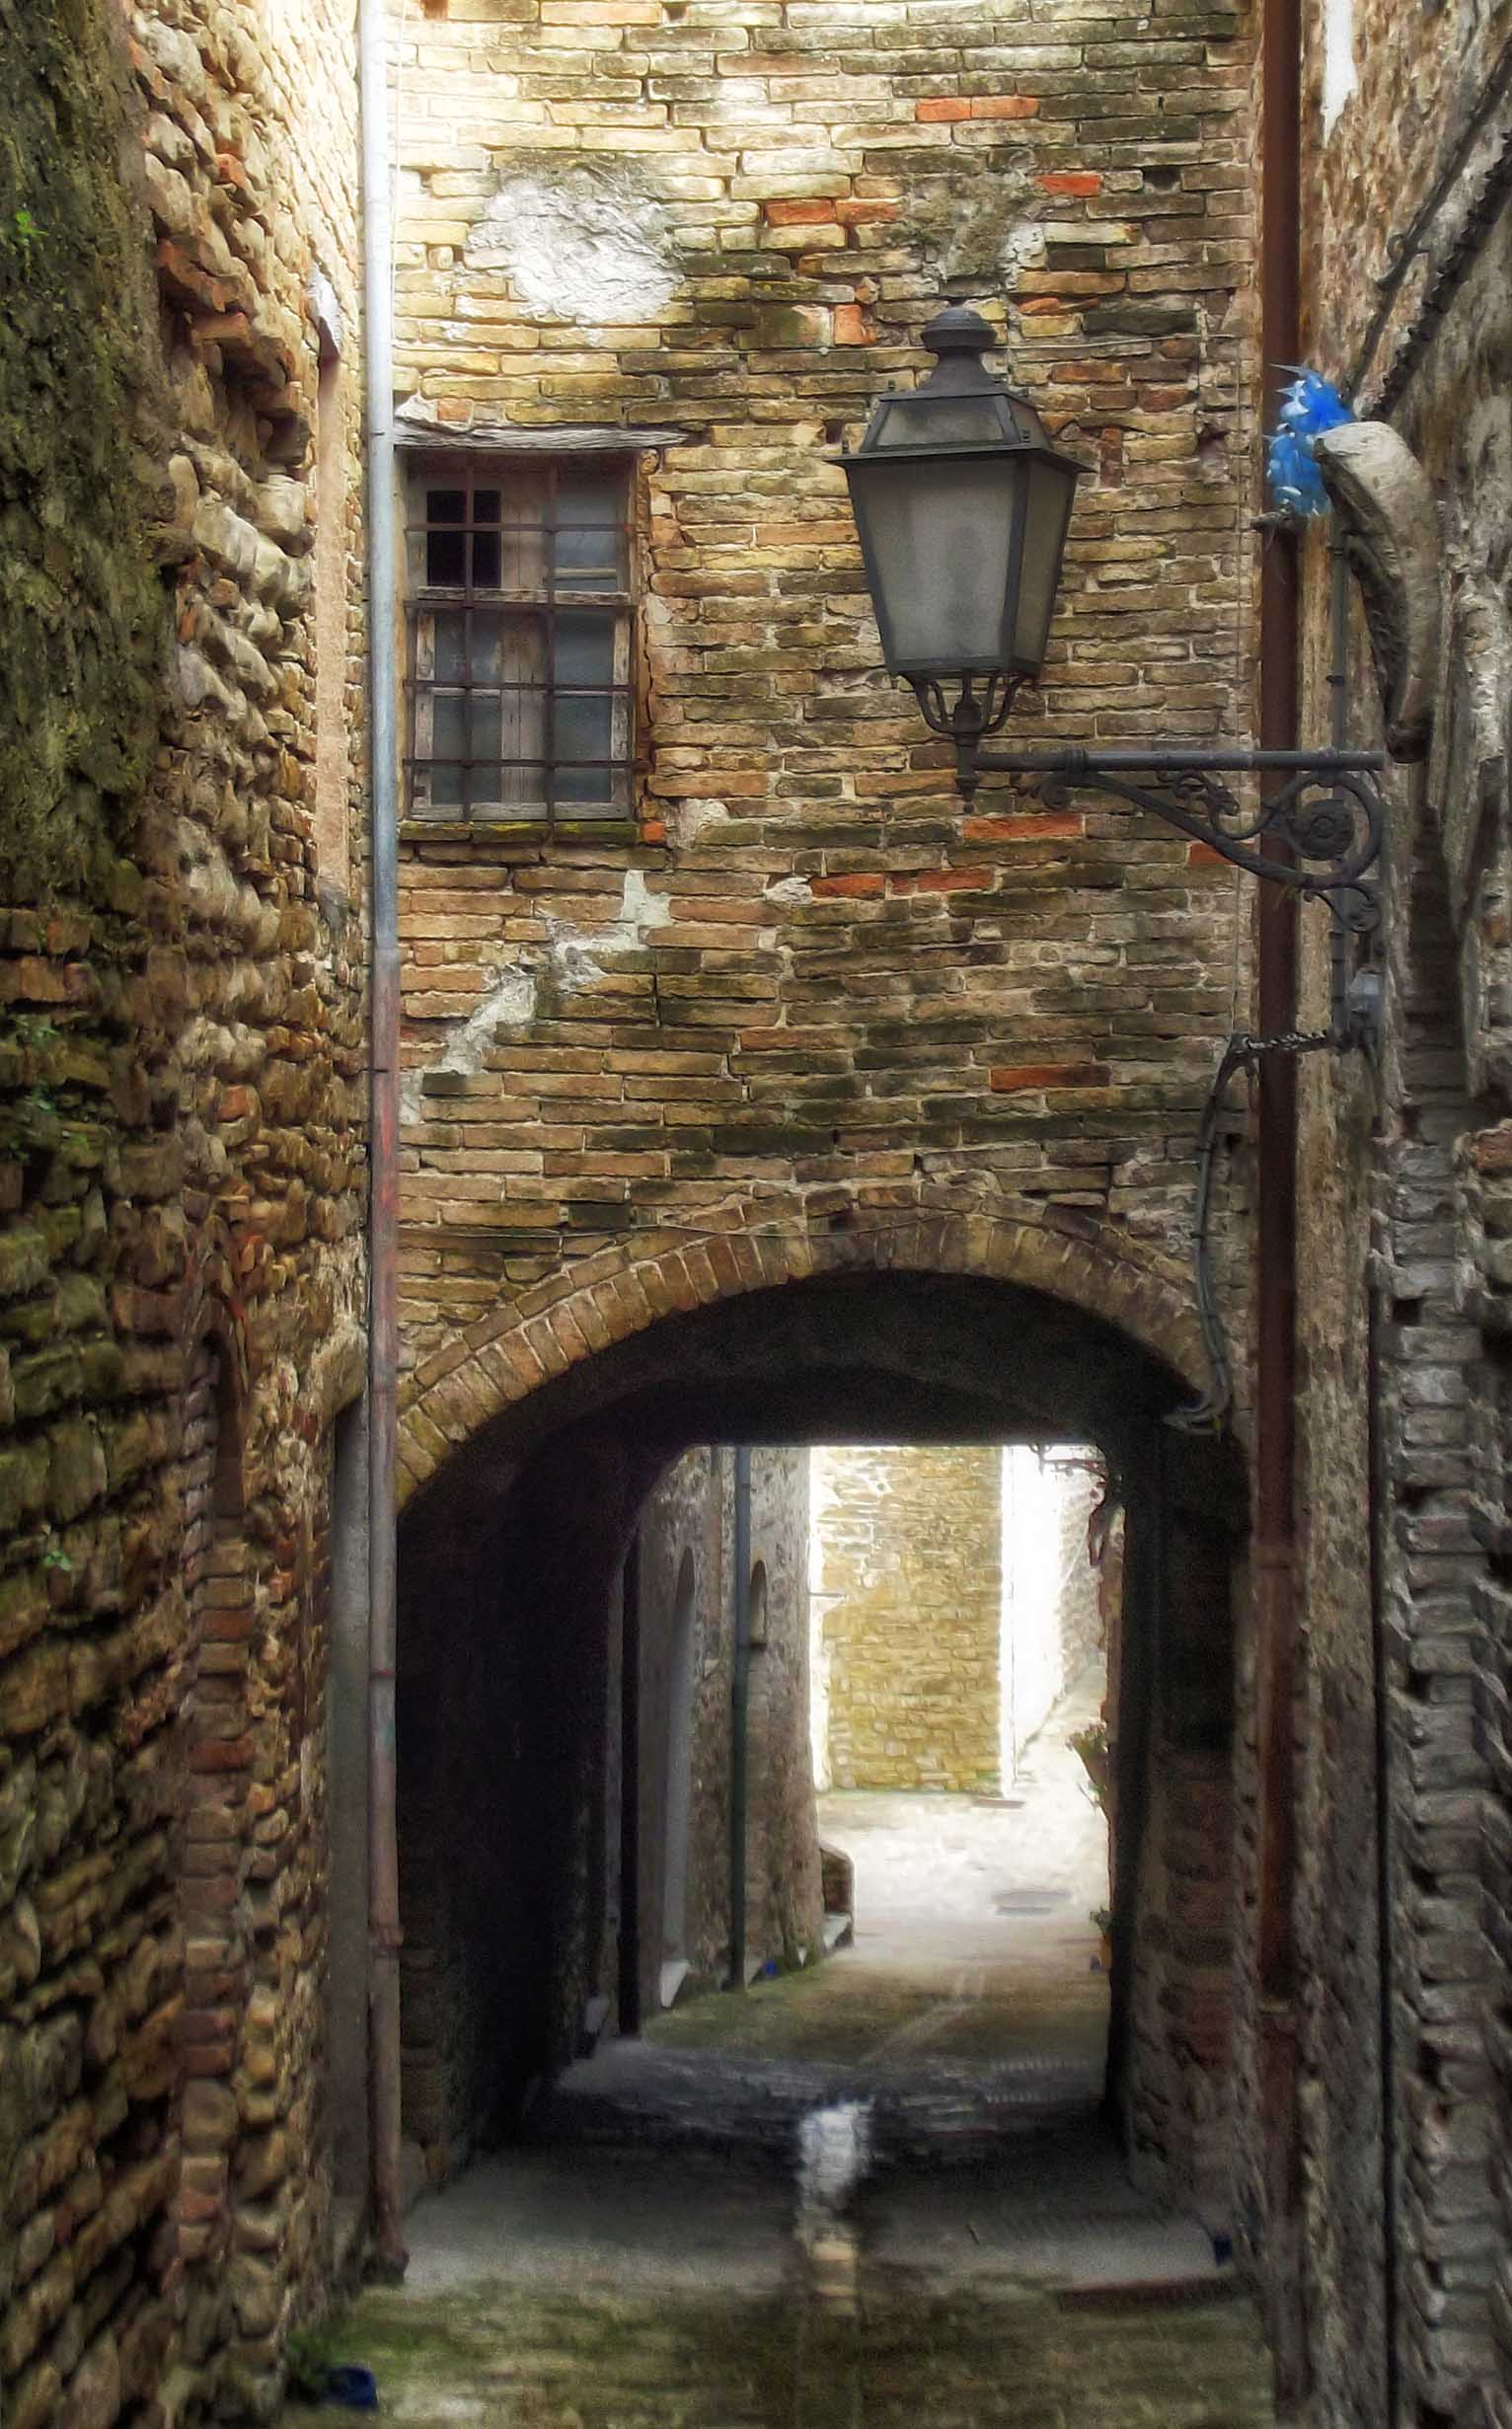 Arched passageway under a stone house